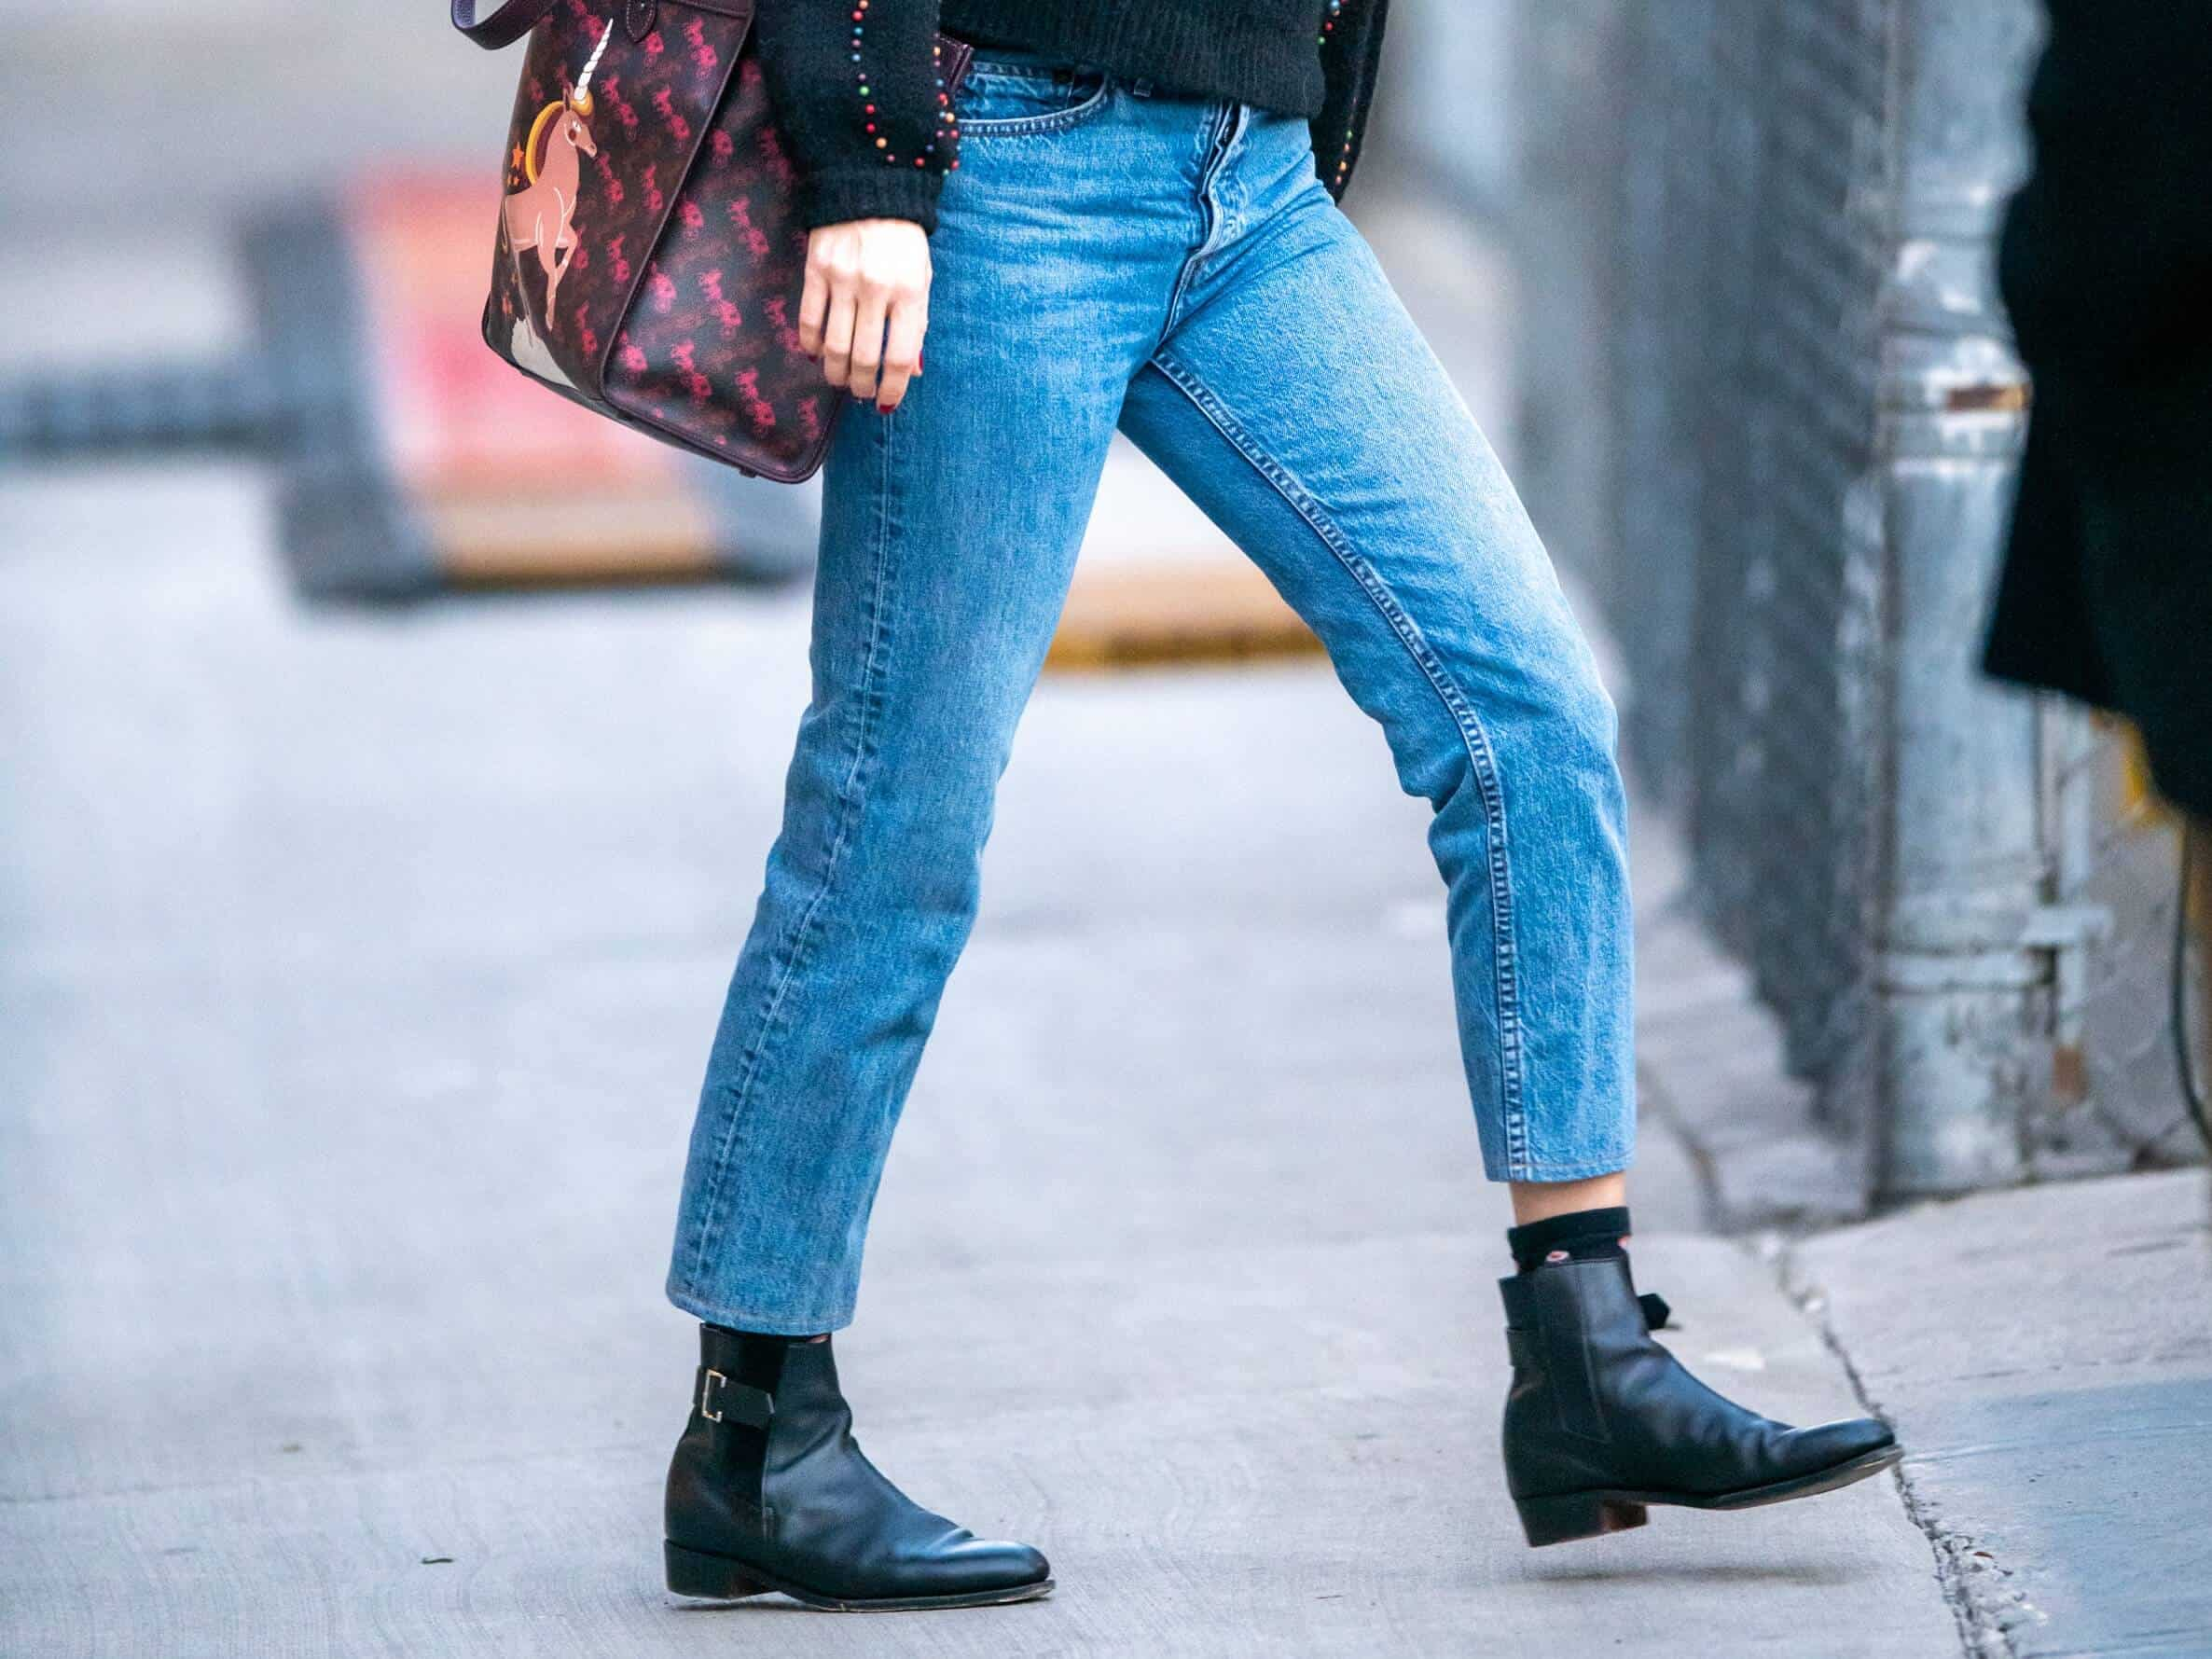 Boots under jeans